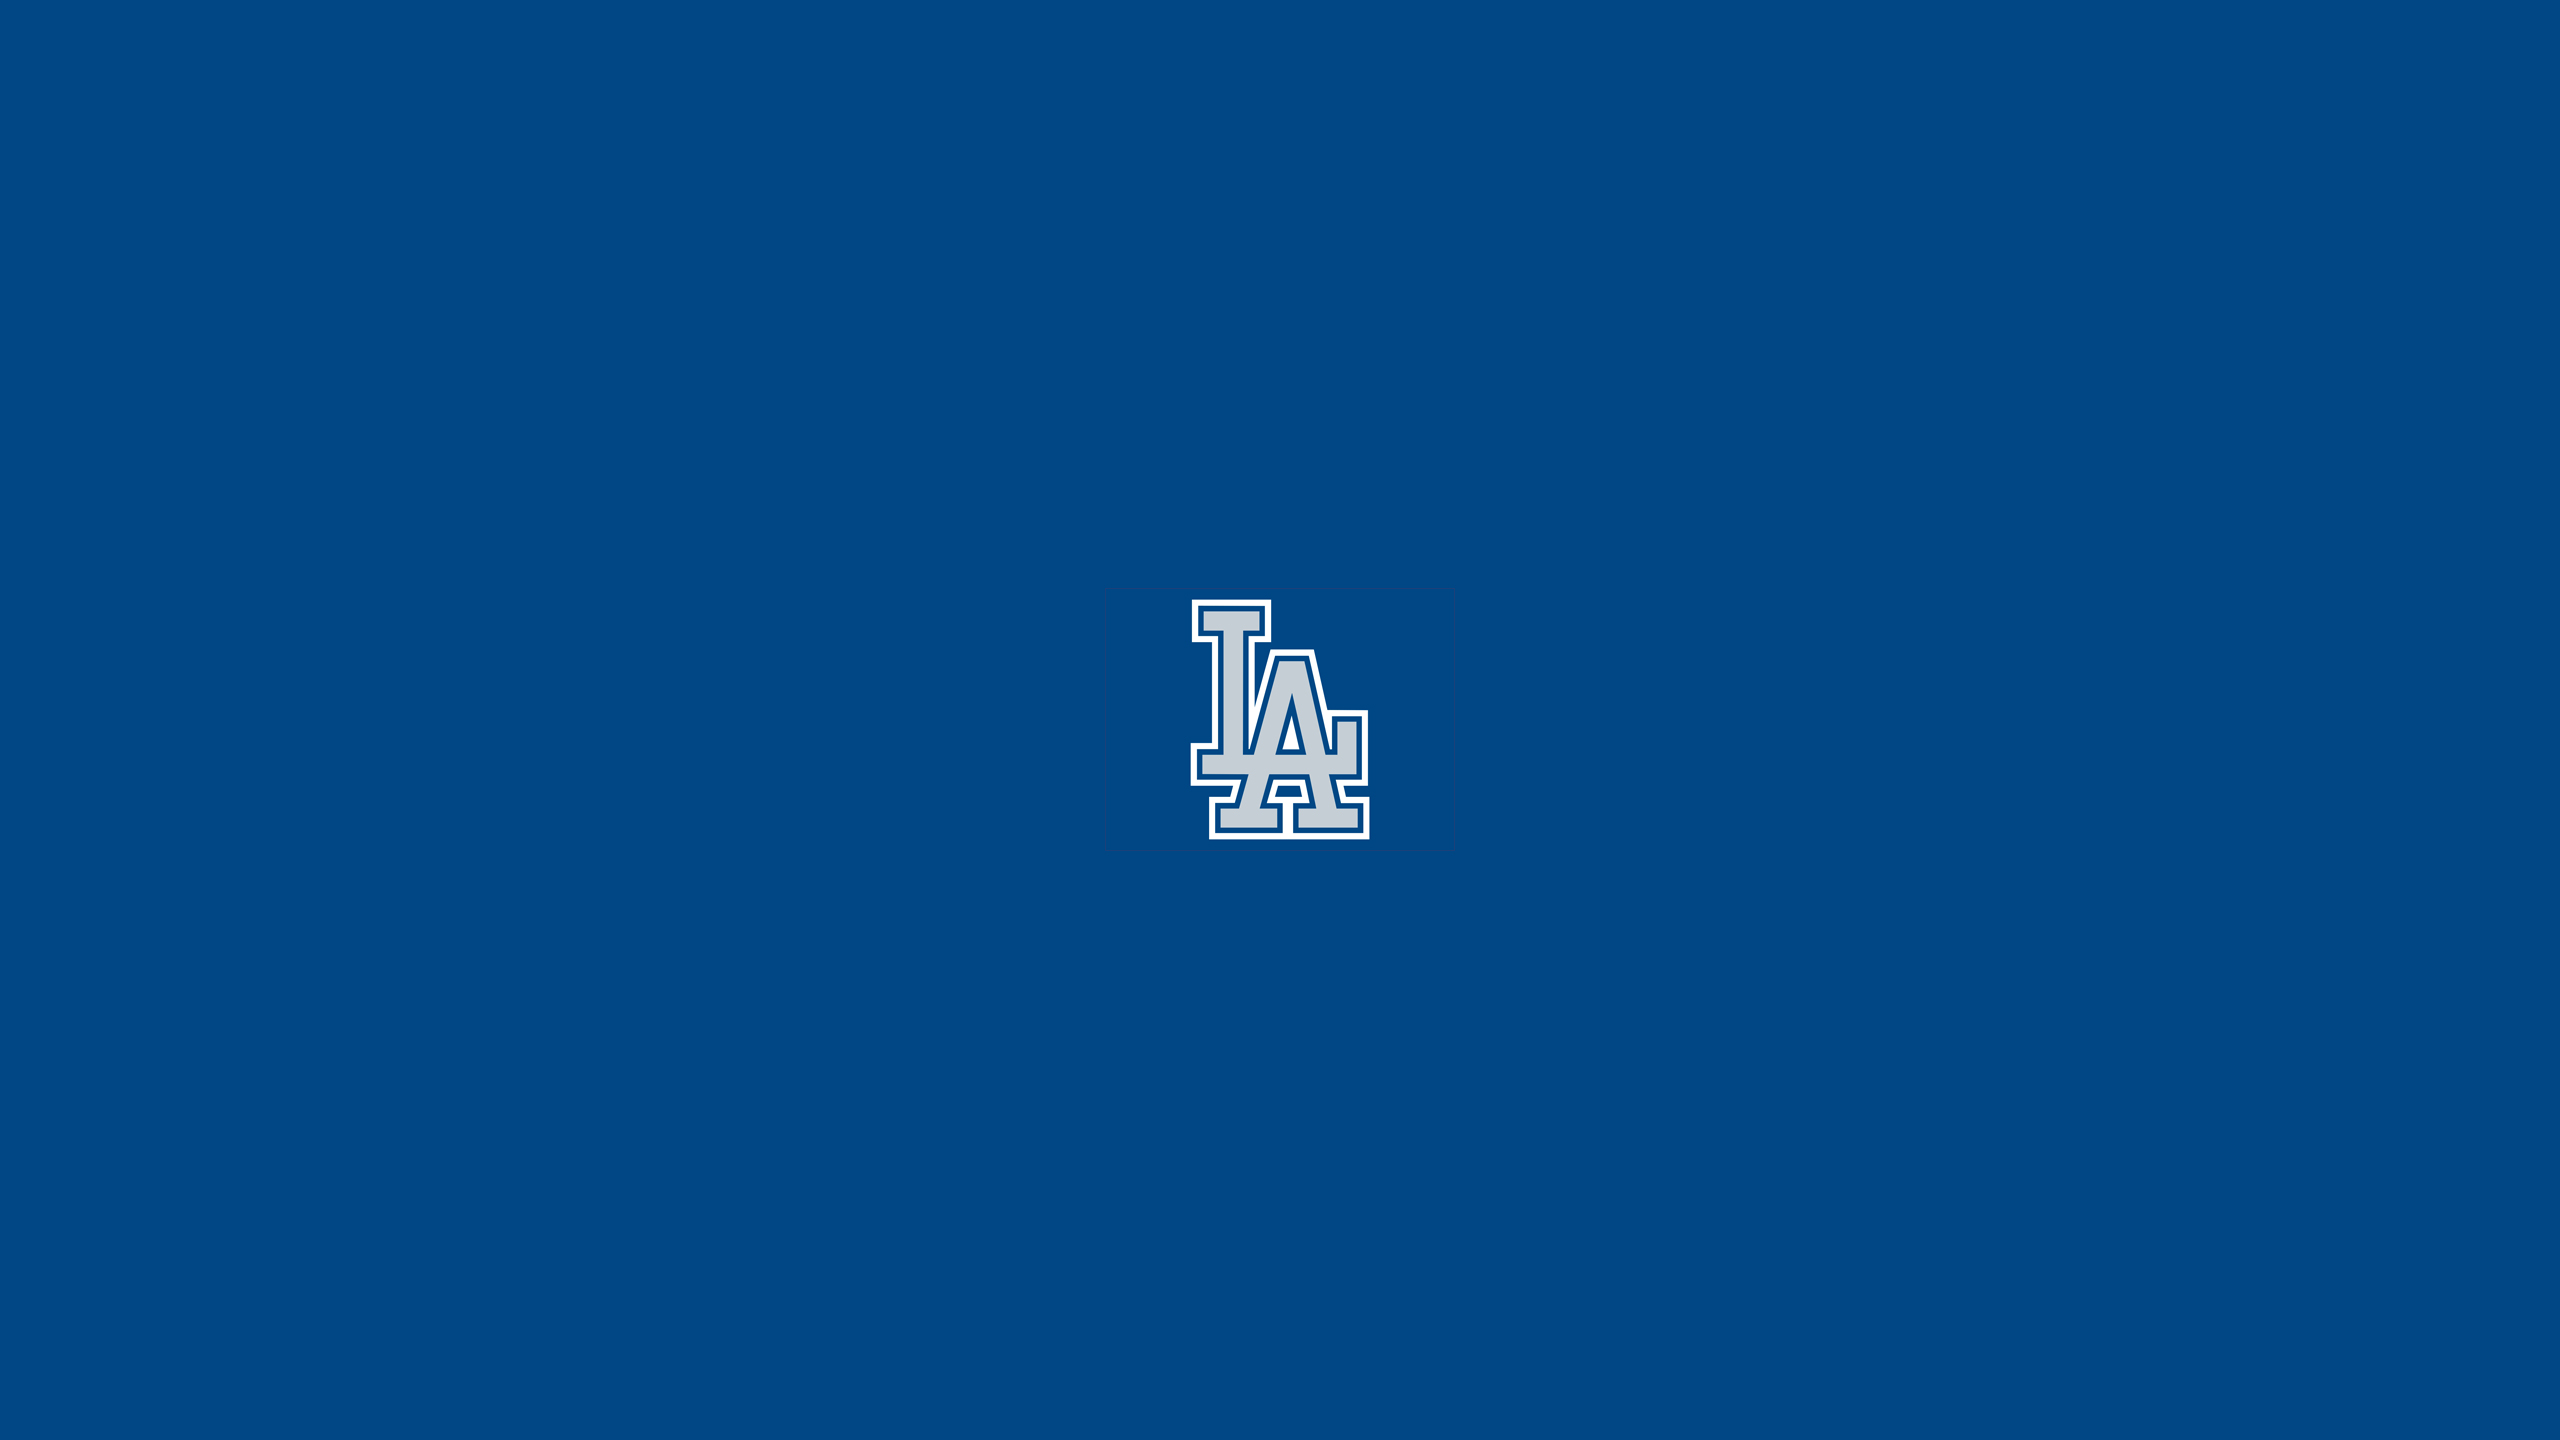 Dodgers Hd Wallpaper Posted By Zoey Tremblay